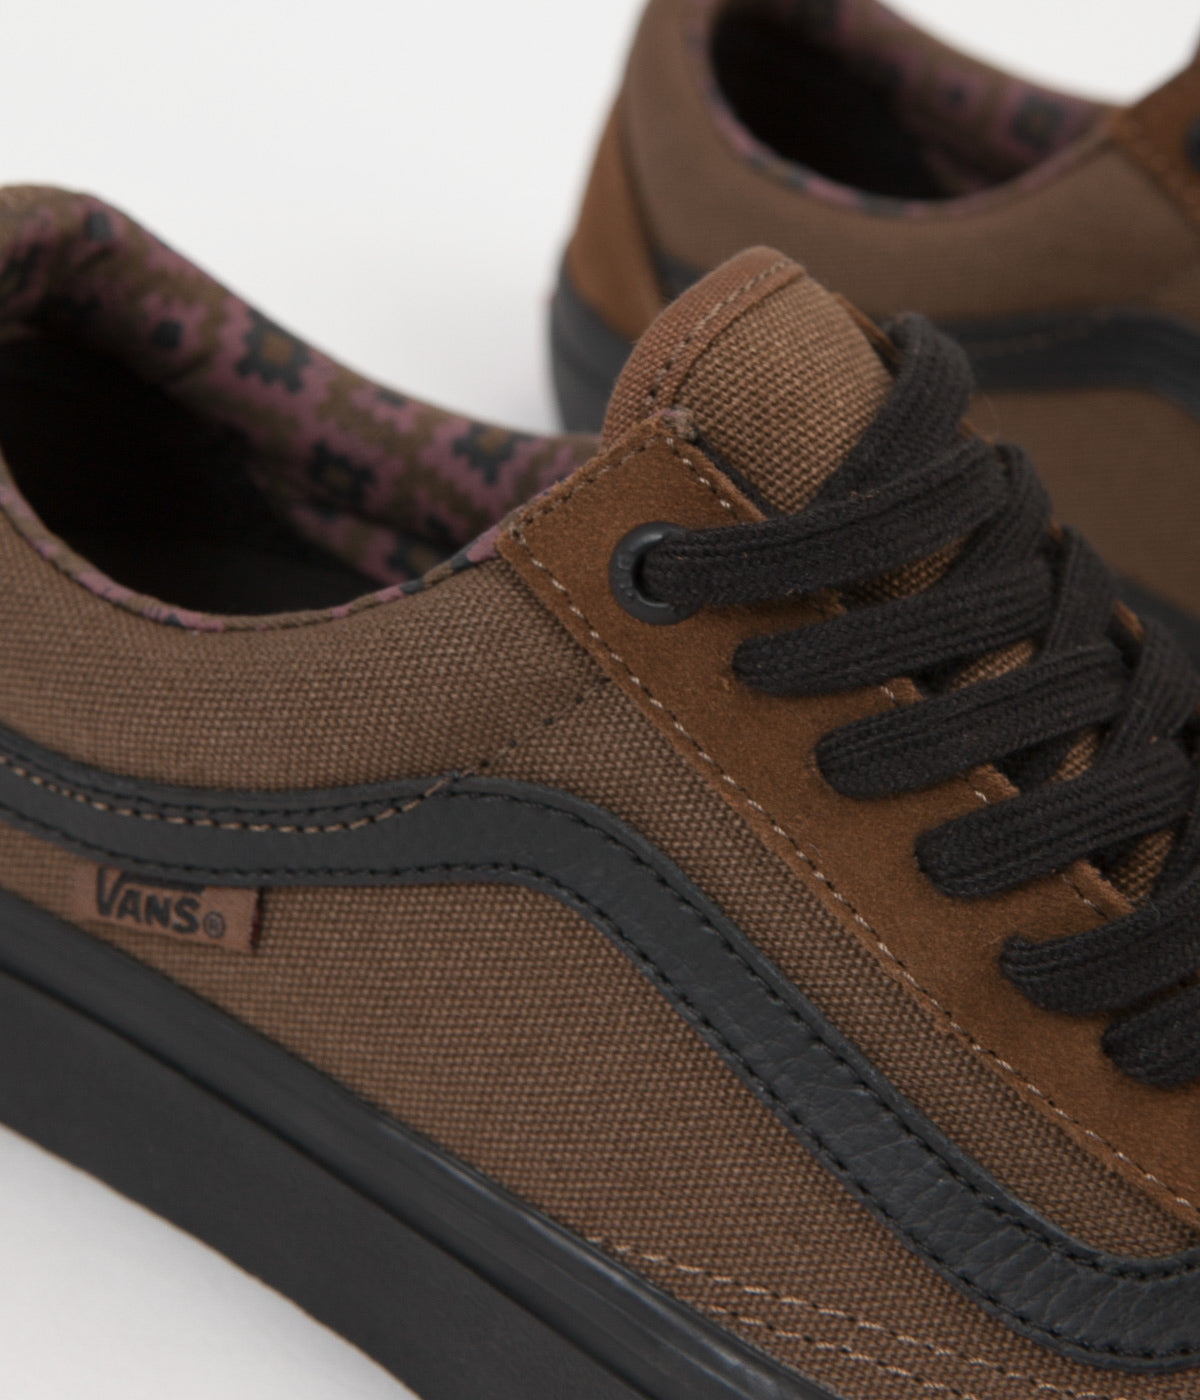 Vans Old Skool Pro (Dakota Roche) Shoes - Teak / Black